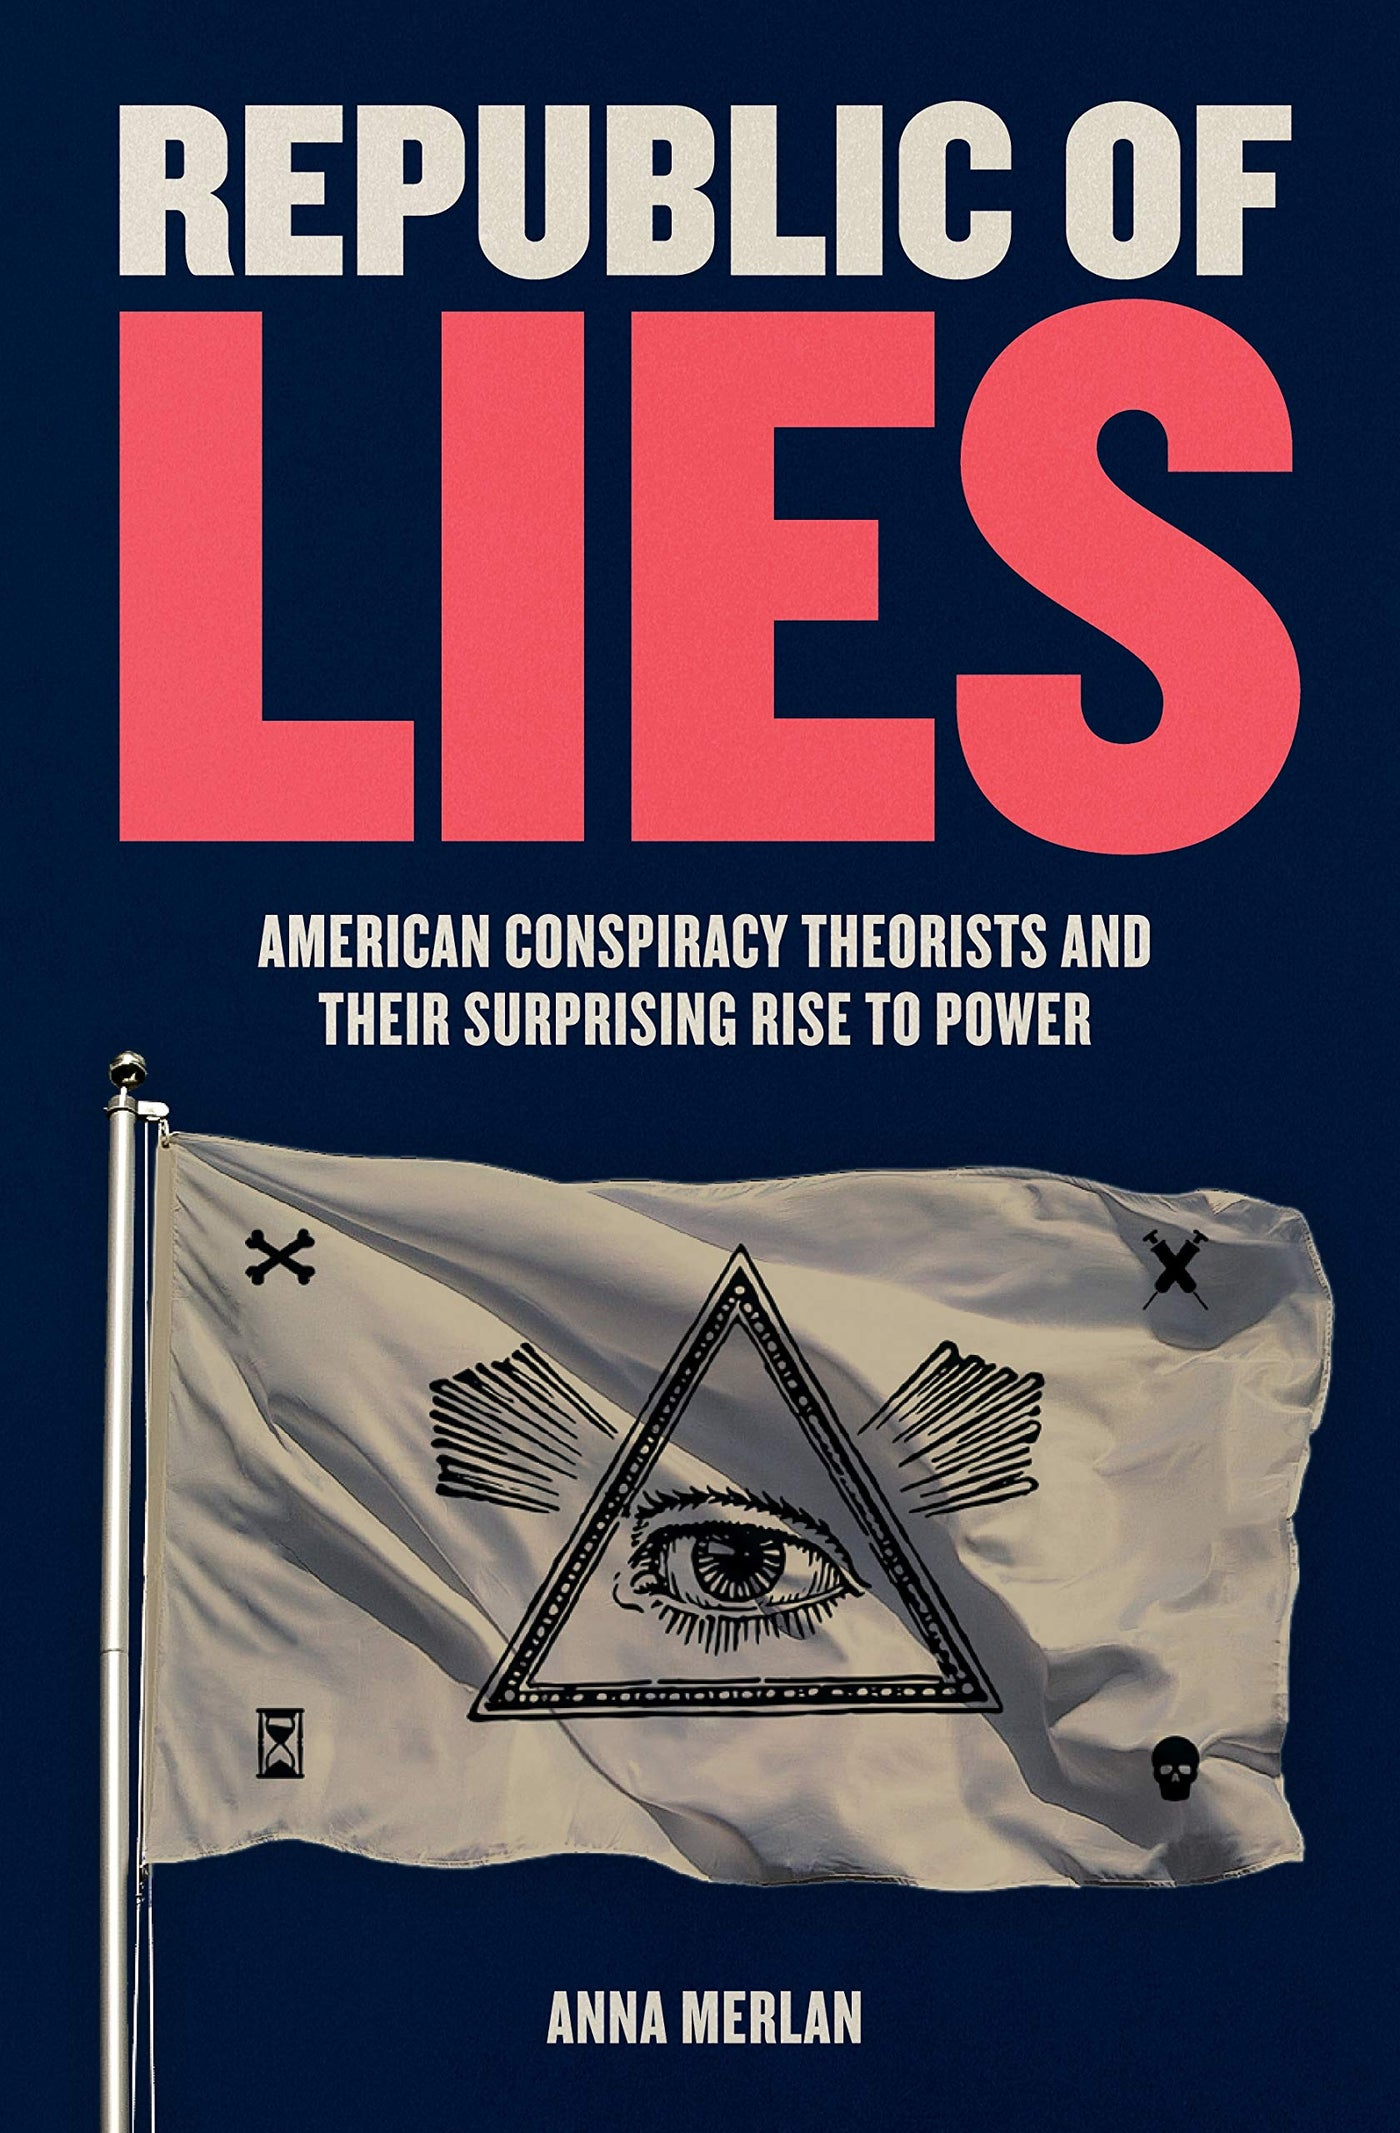 Republic of Lies: American Conspiracy Theorists and Their Surprising Rise to Power by Anna Merlan